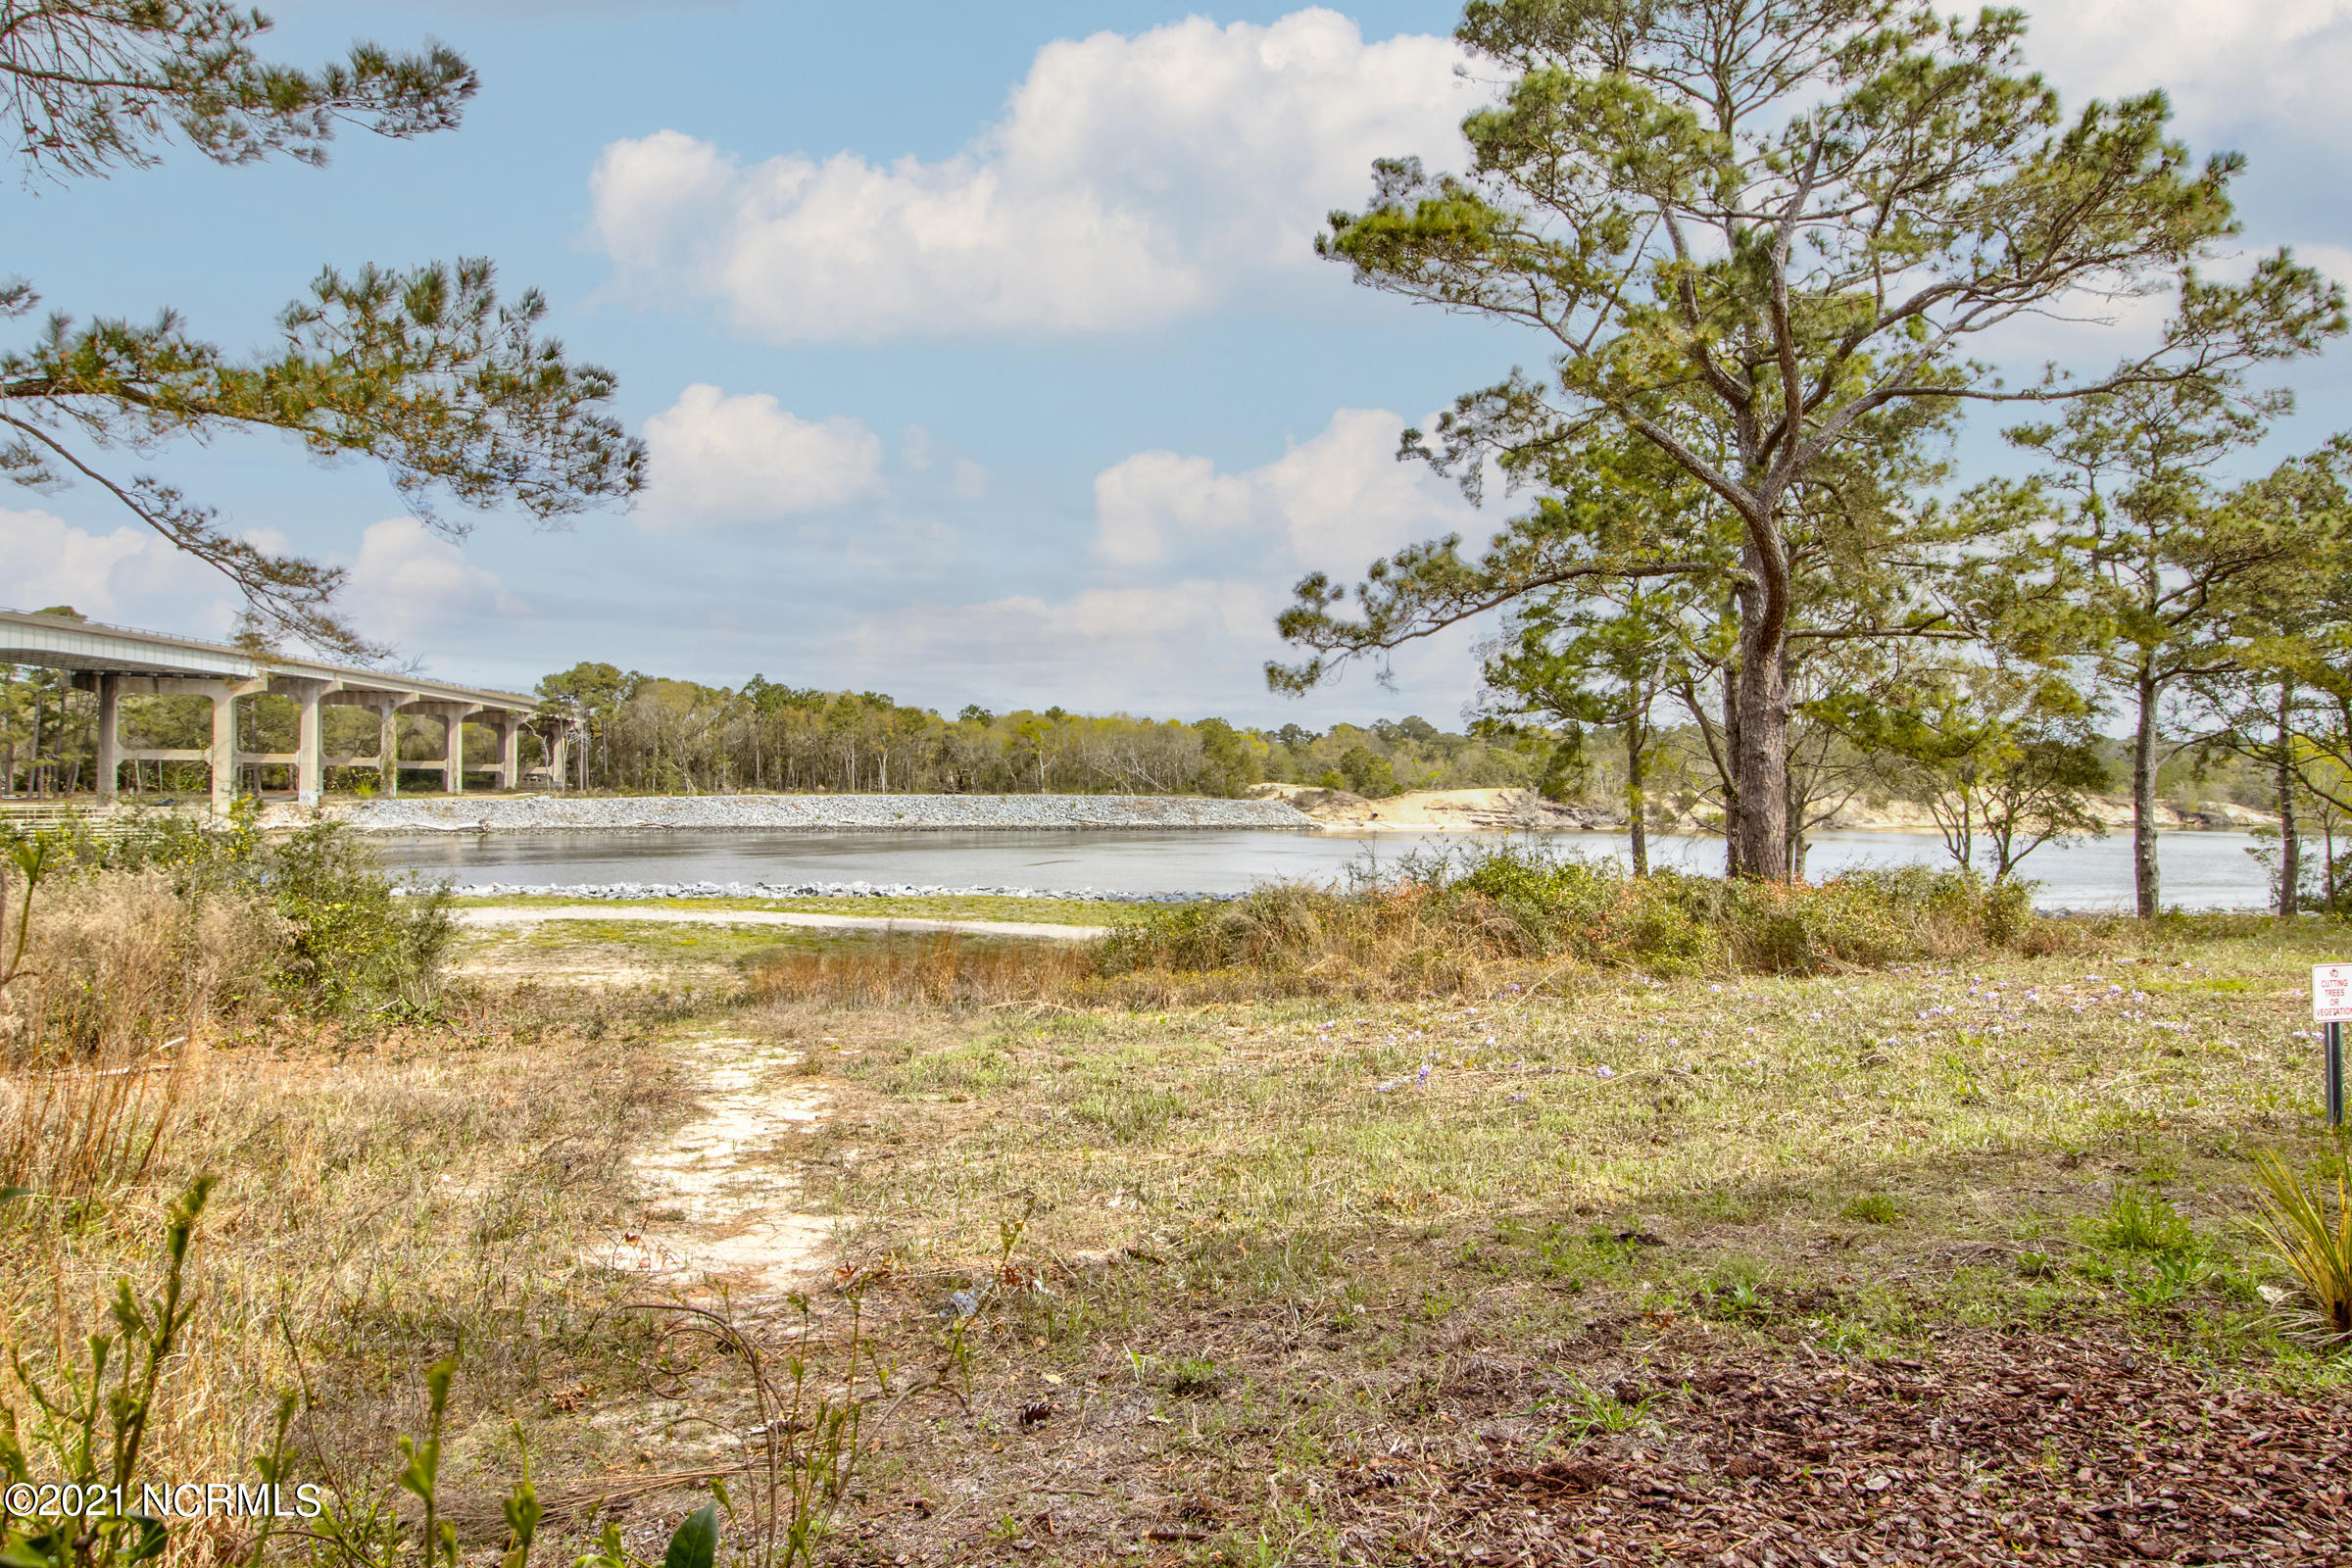 518 Spencer Farlow Drive, Carolina Beach, North Carolina 28428, 3 Bedrooms Bedrooms, 7 Rooms Rooms,4 BathroomsBathrooms,Townhouse,For sale,Spencer Farlow,100264483